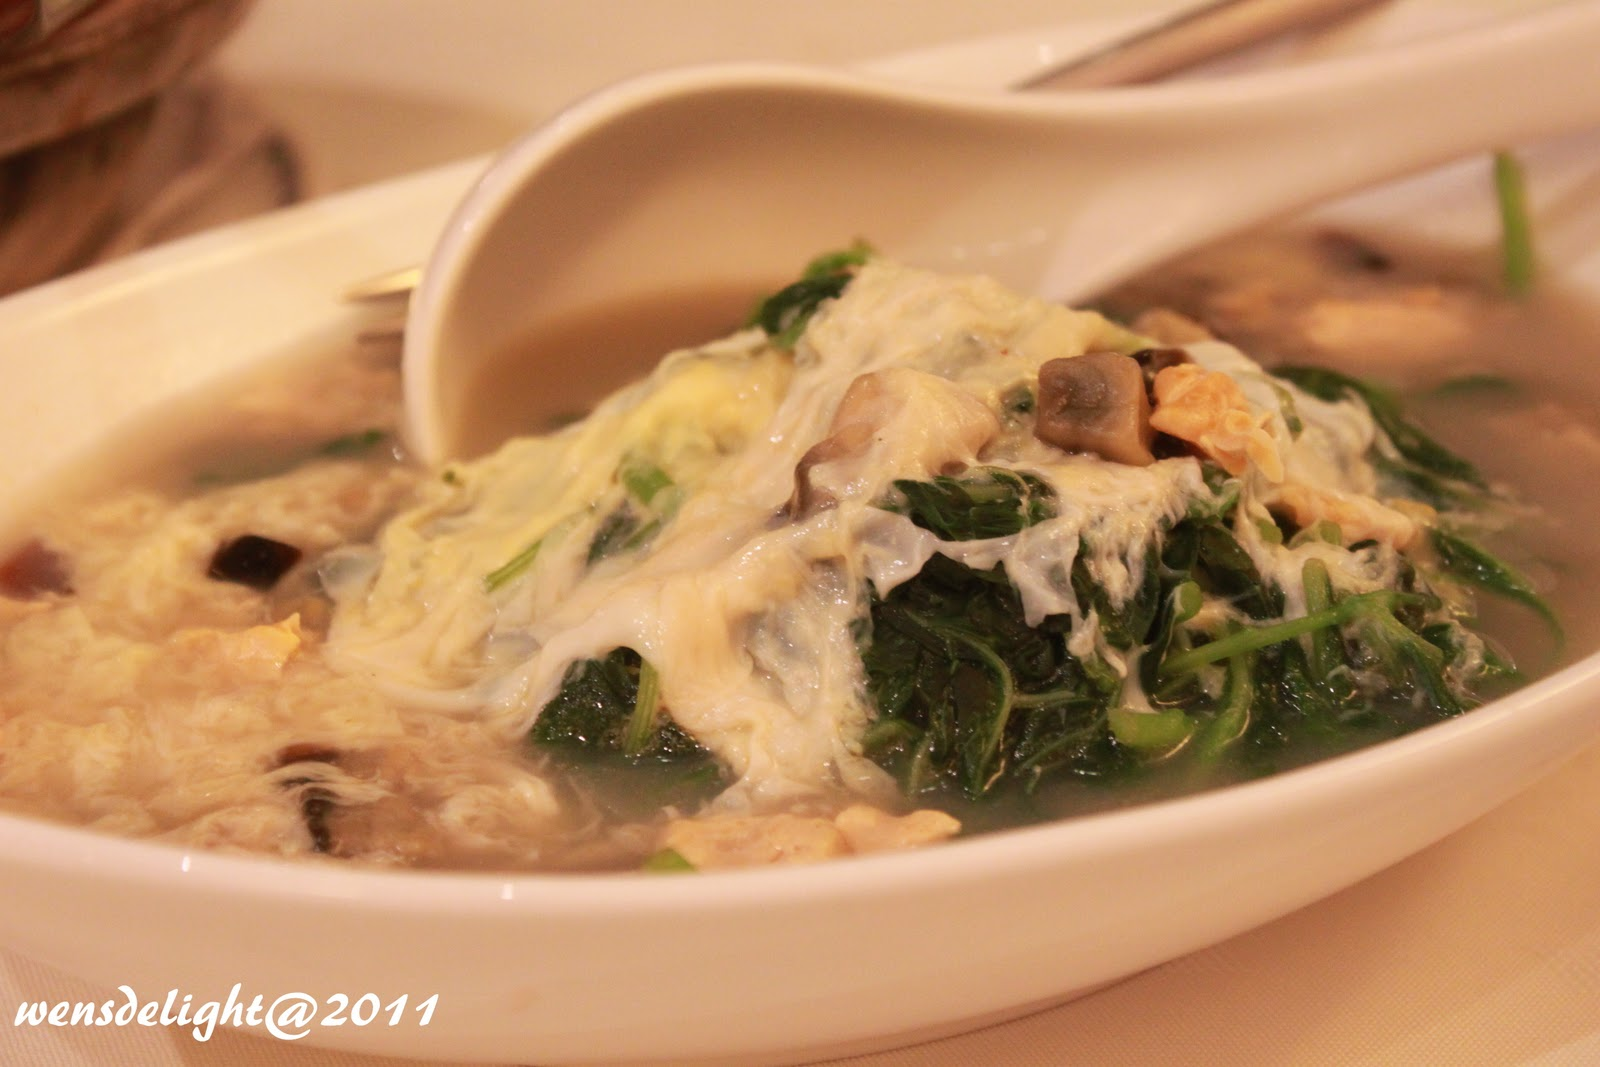 Soupy Chinese Spinach with Eggs